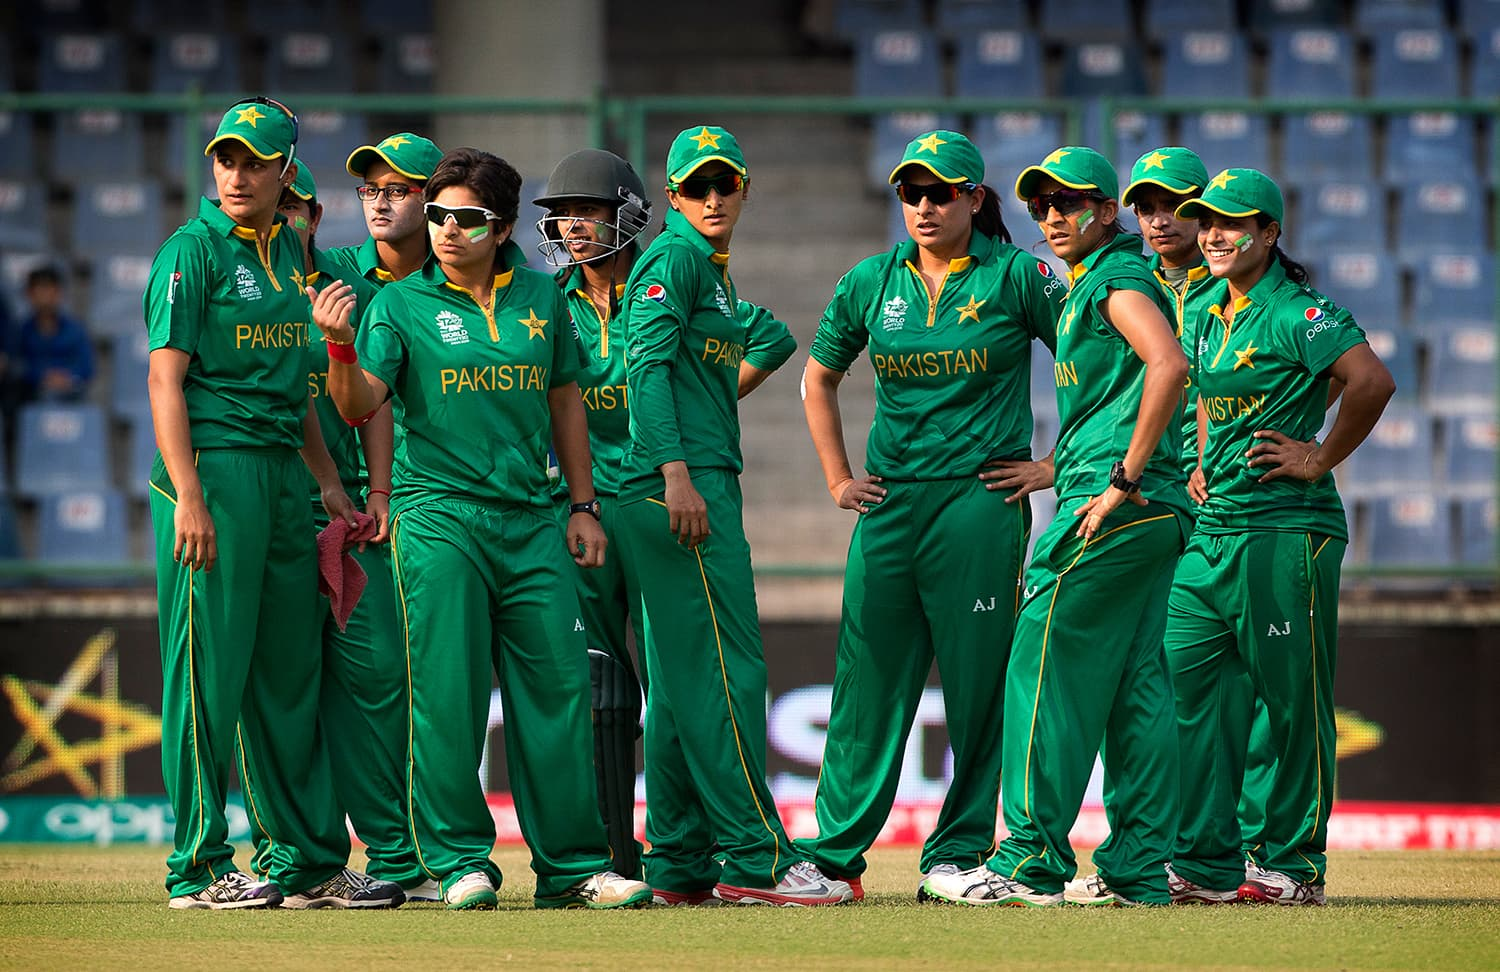 Pakistan players wait for the next Indian batter. — AP